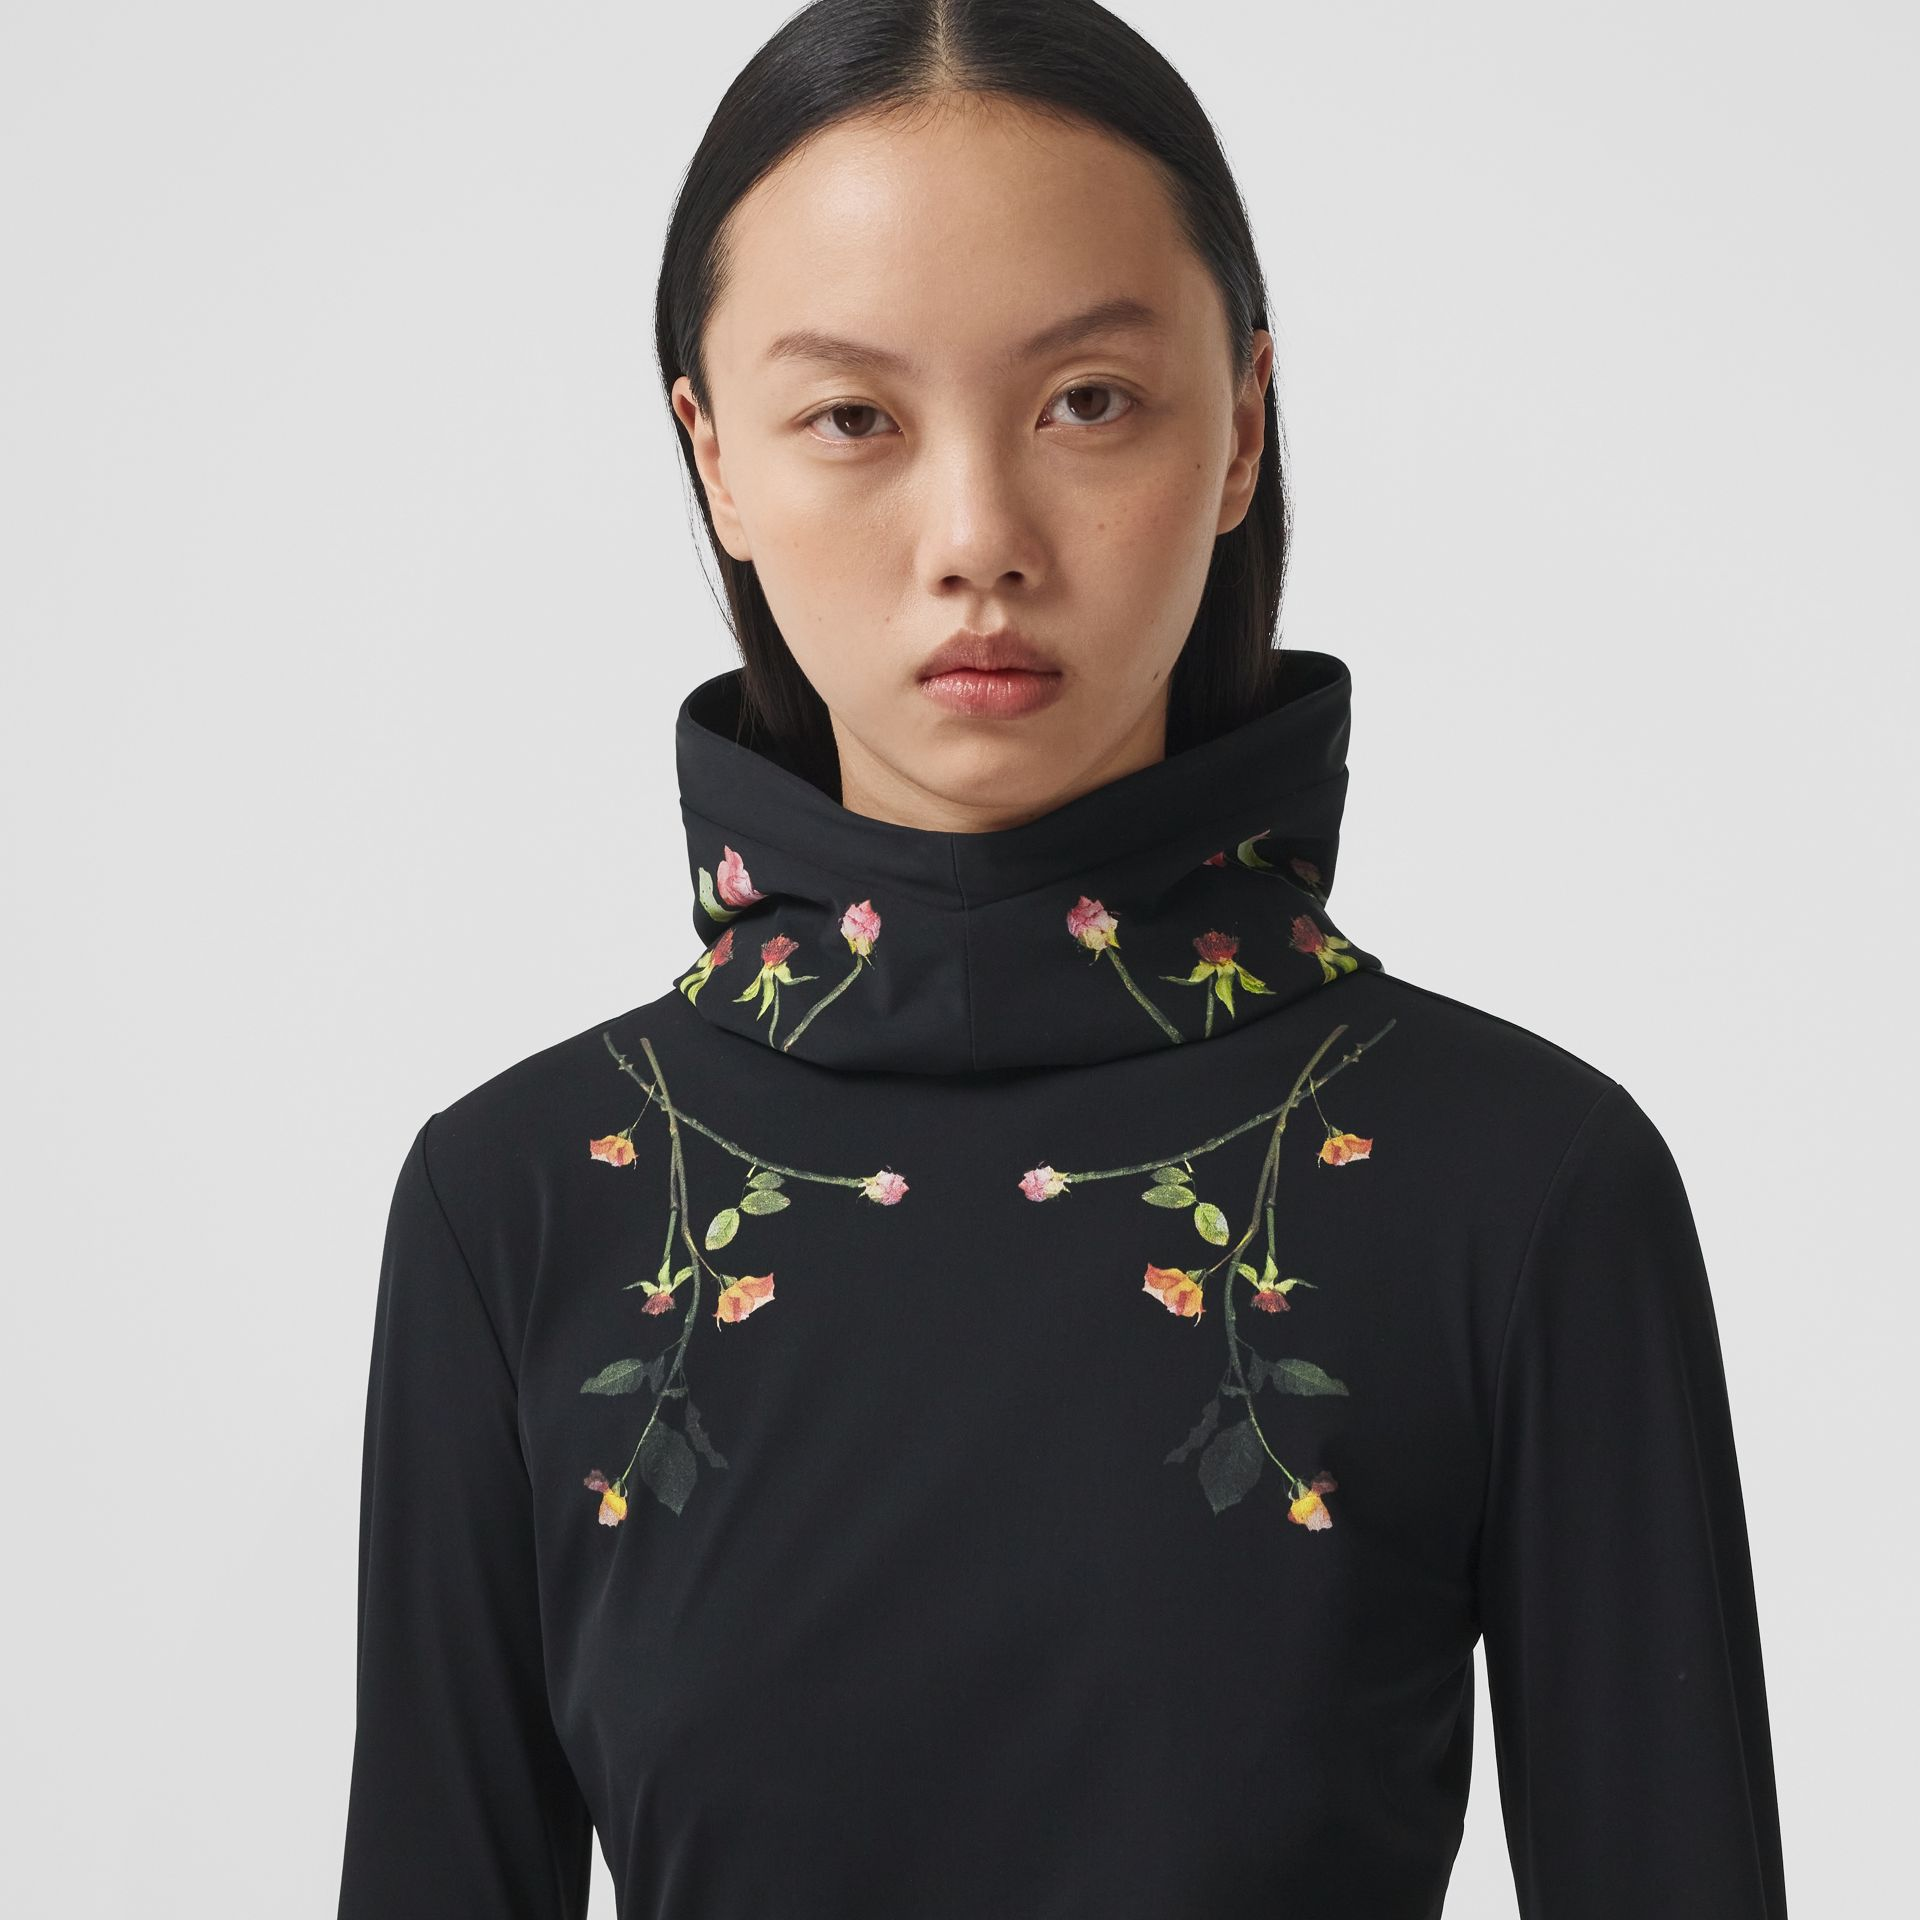 Rose Print Stretch Jersey Hooded Top in Black - Women | Burberry - gallery image 1